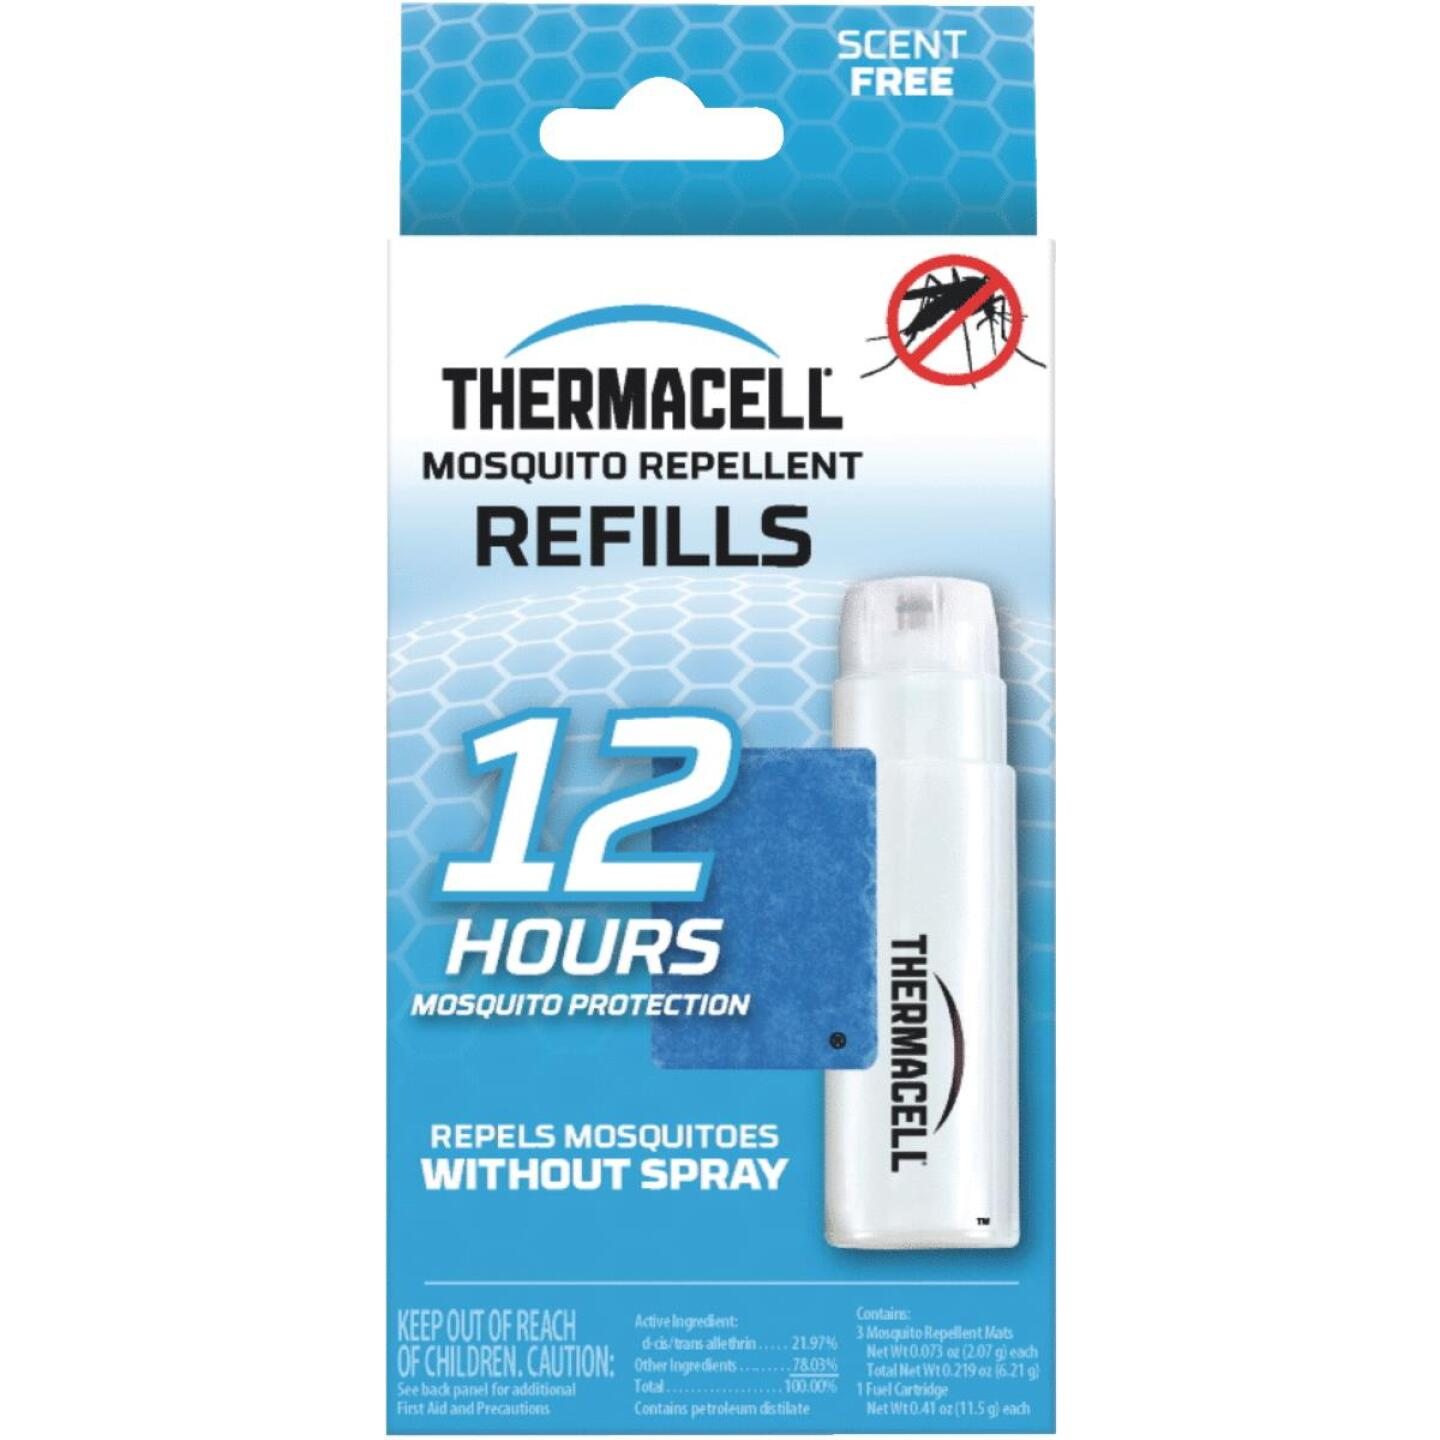 Thermacell 12 Hr. Mosquito Repellent Refill Image 1